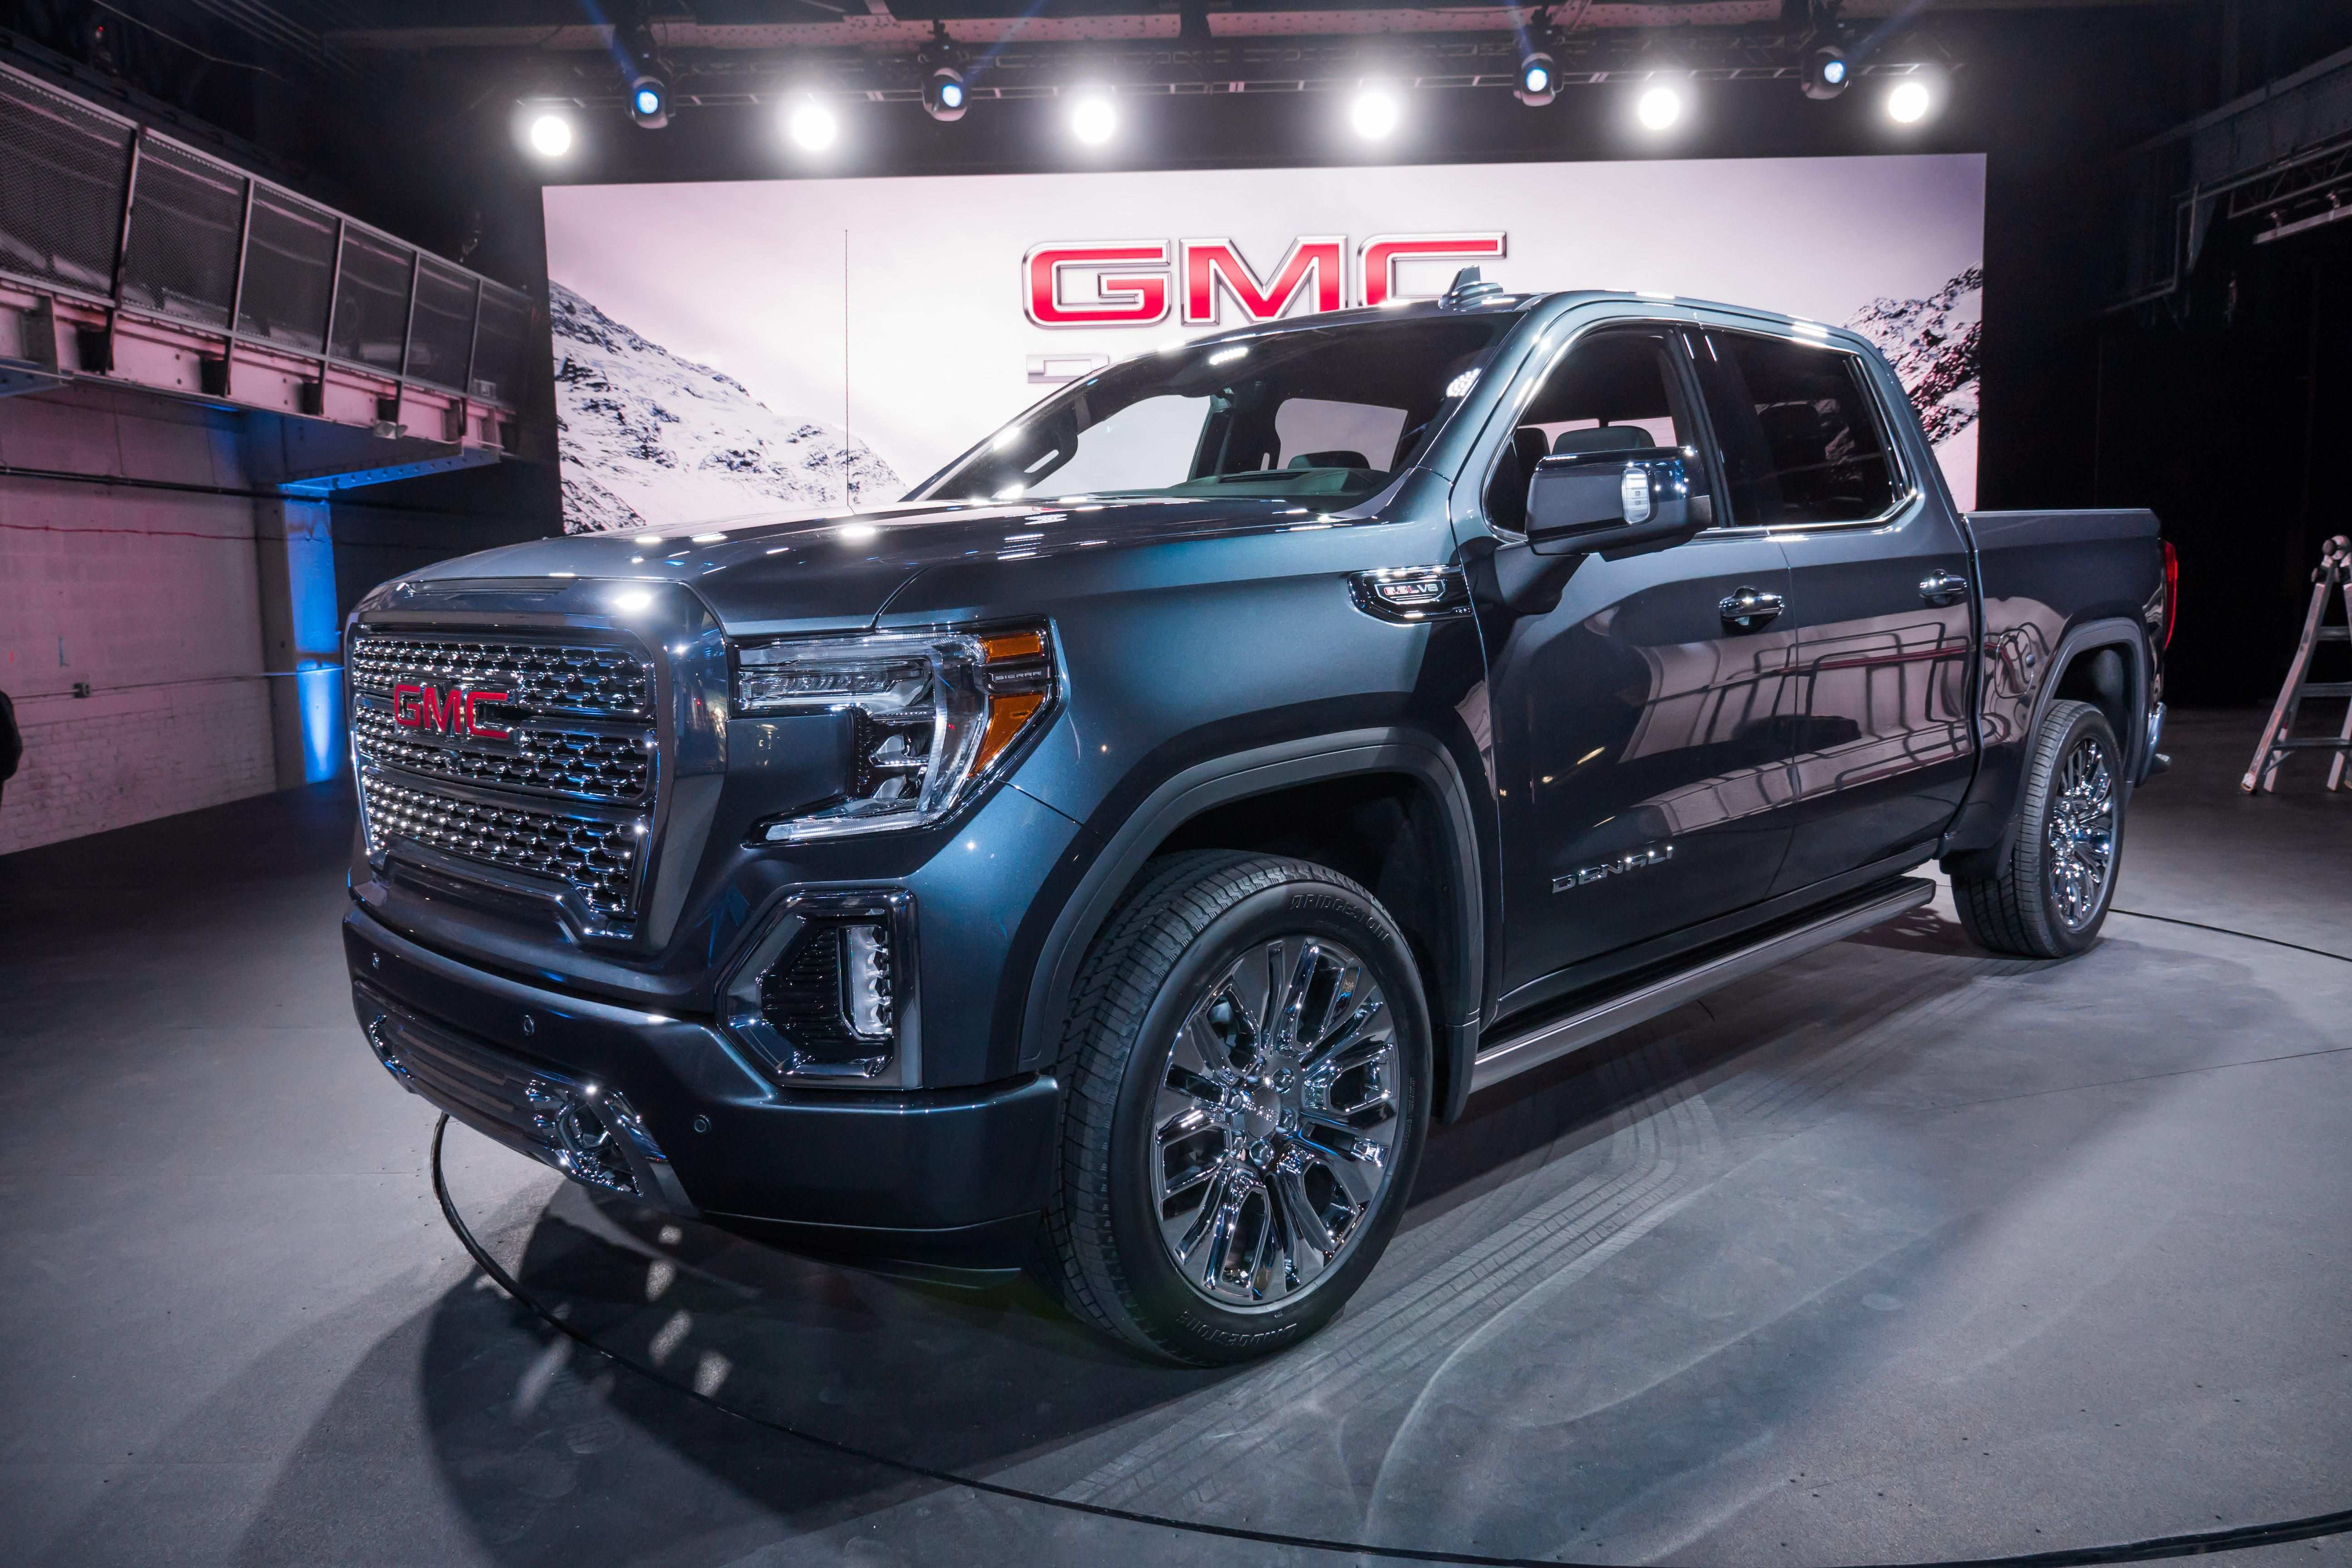 57 Great New 2019 Gmc Forum Engine Model with New 2019 Gmc Forum Engine